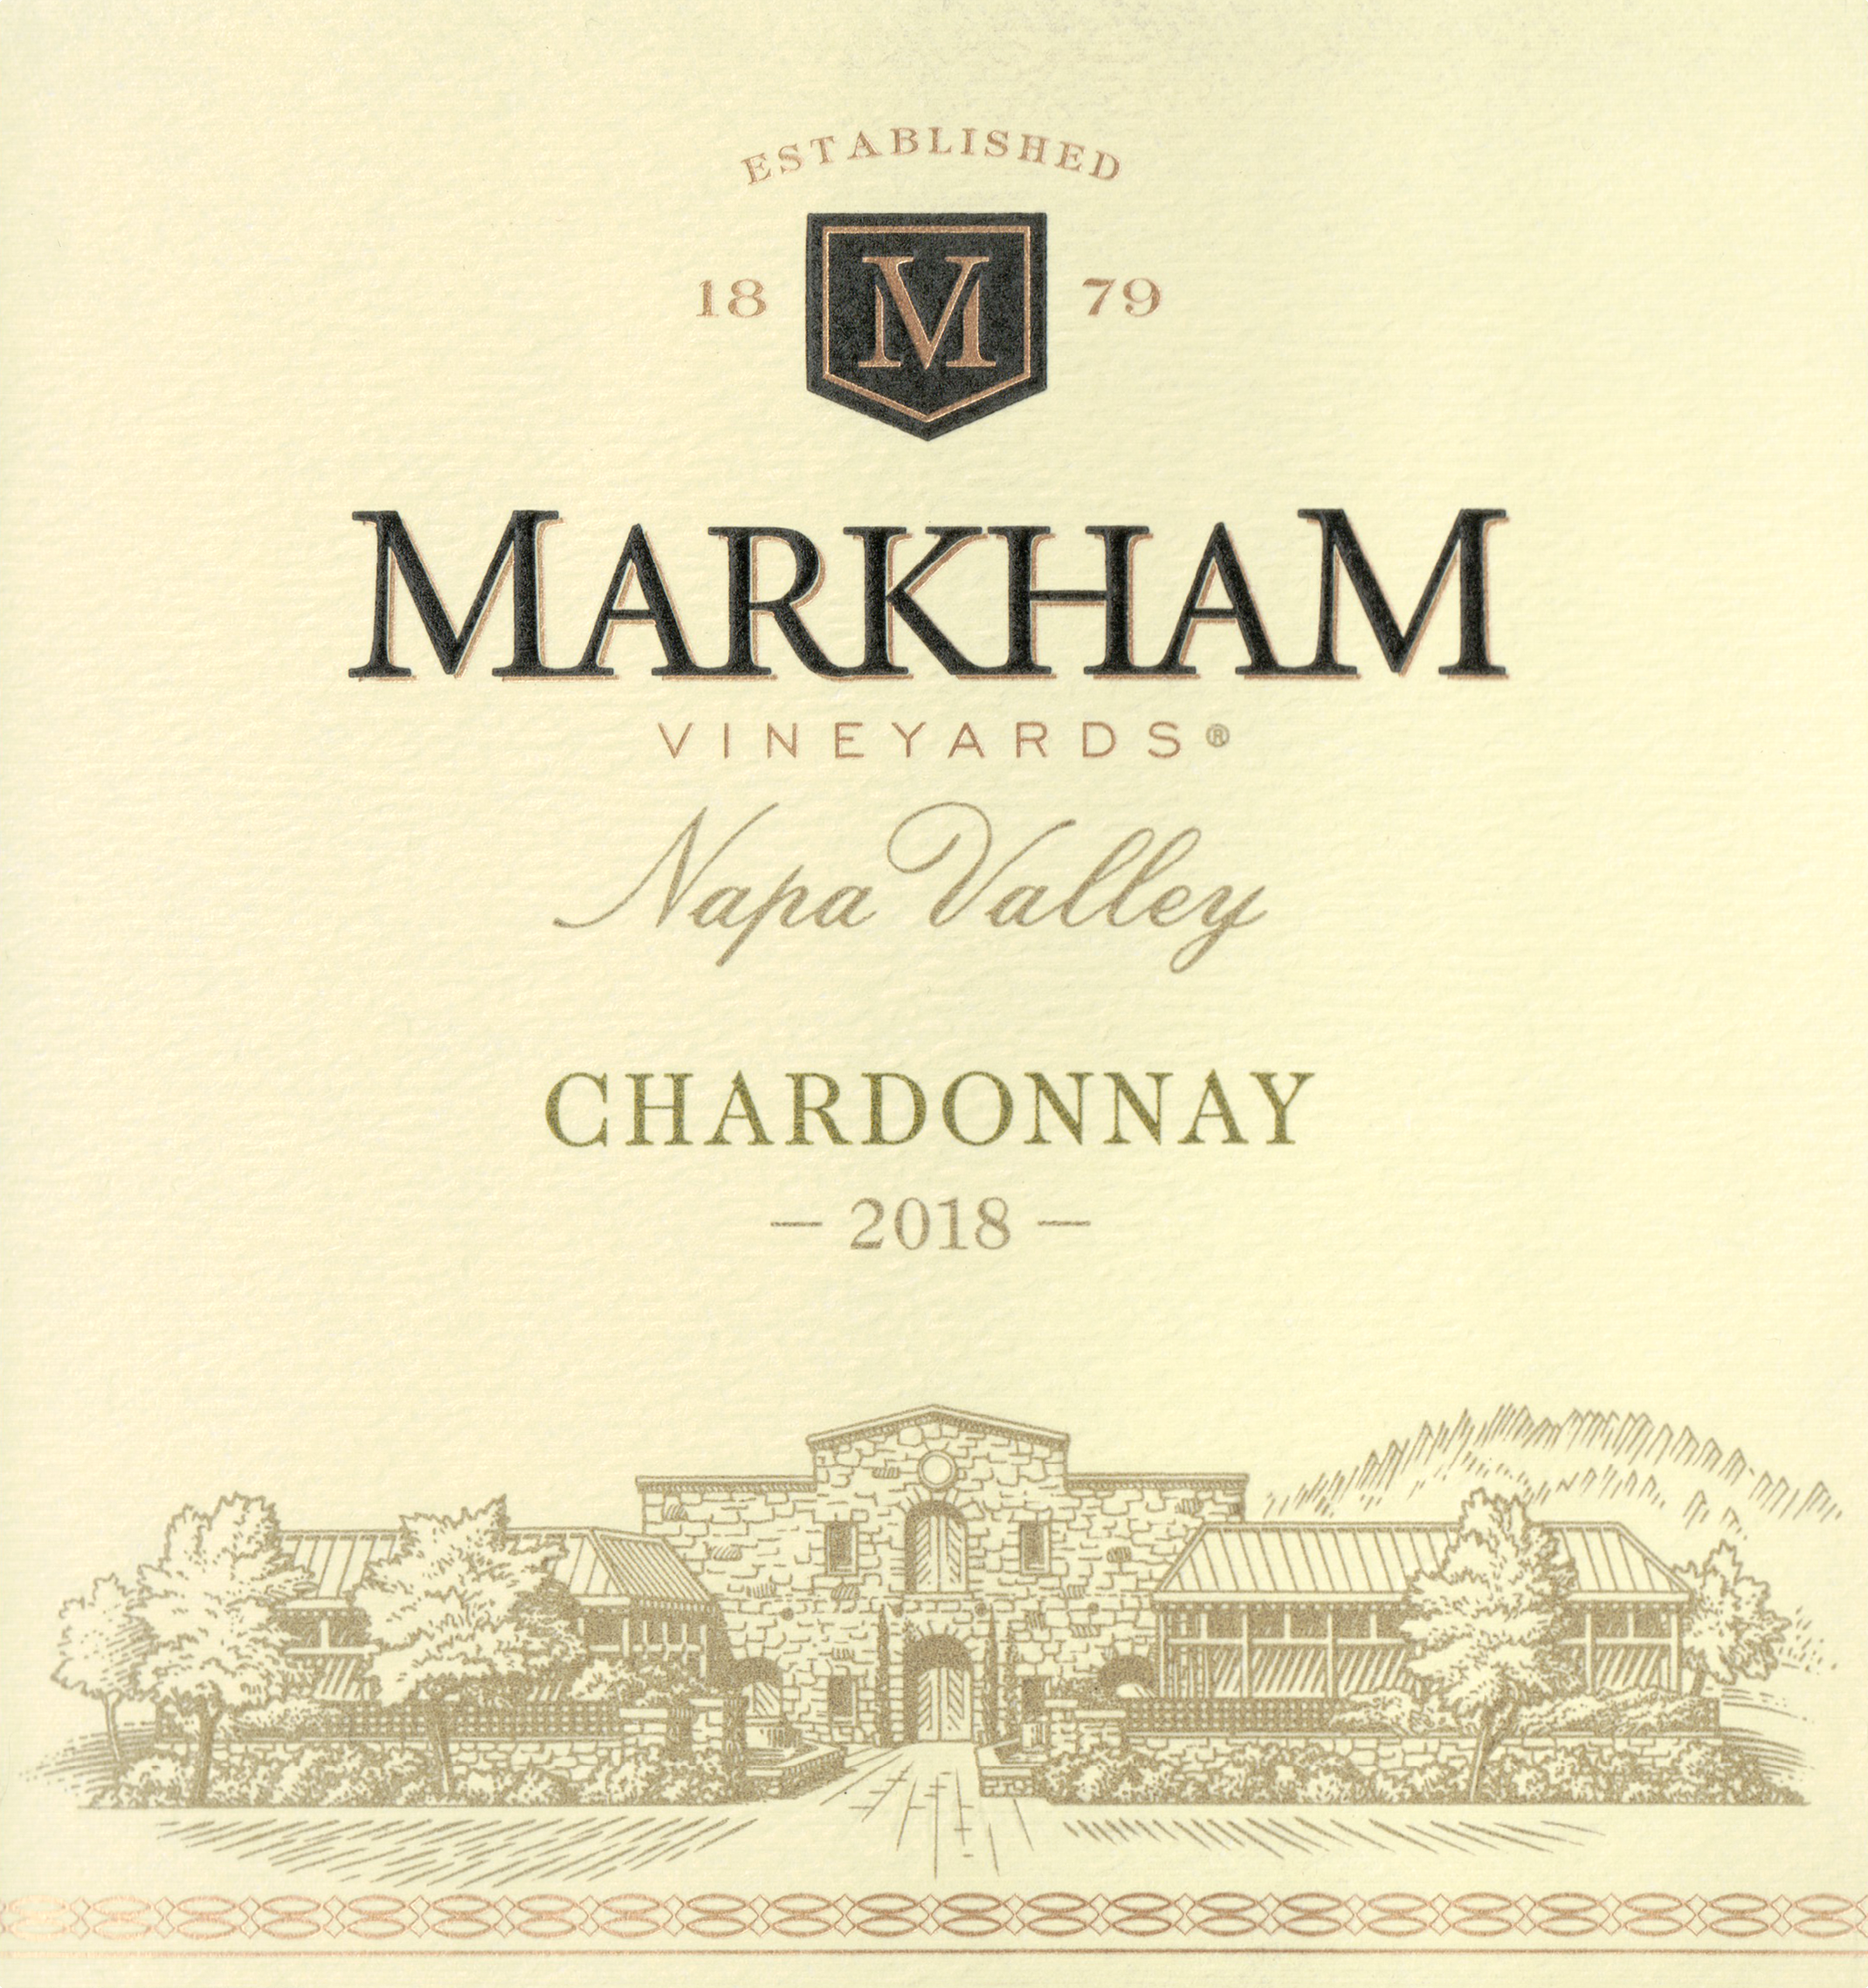 Markham Vineyards Chardonnay 2018